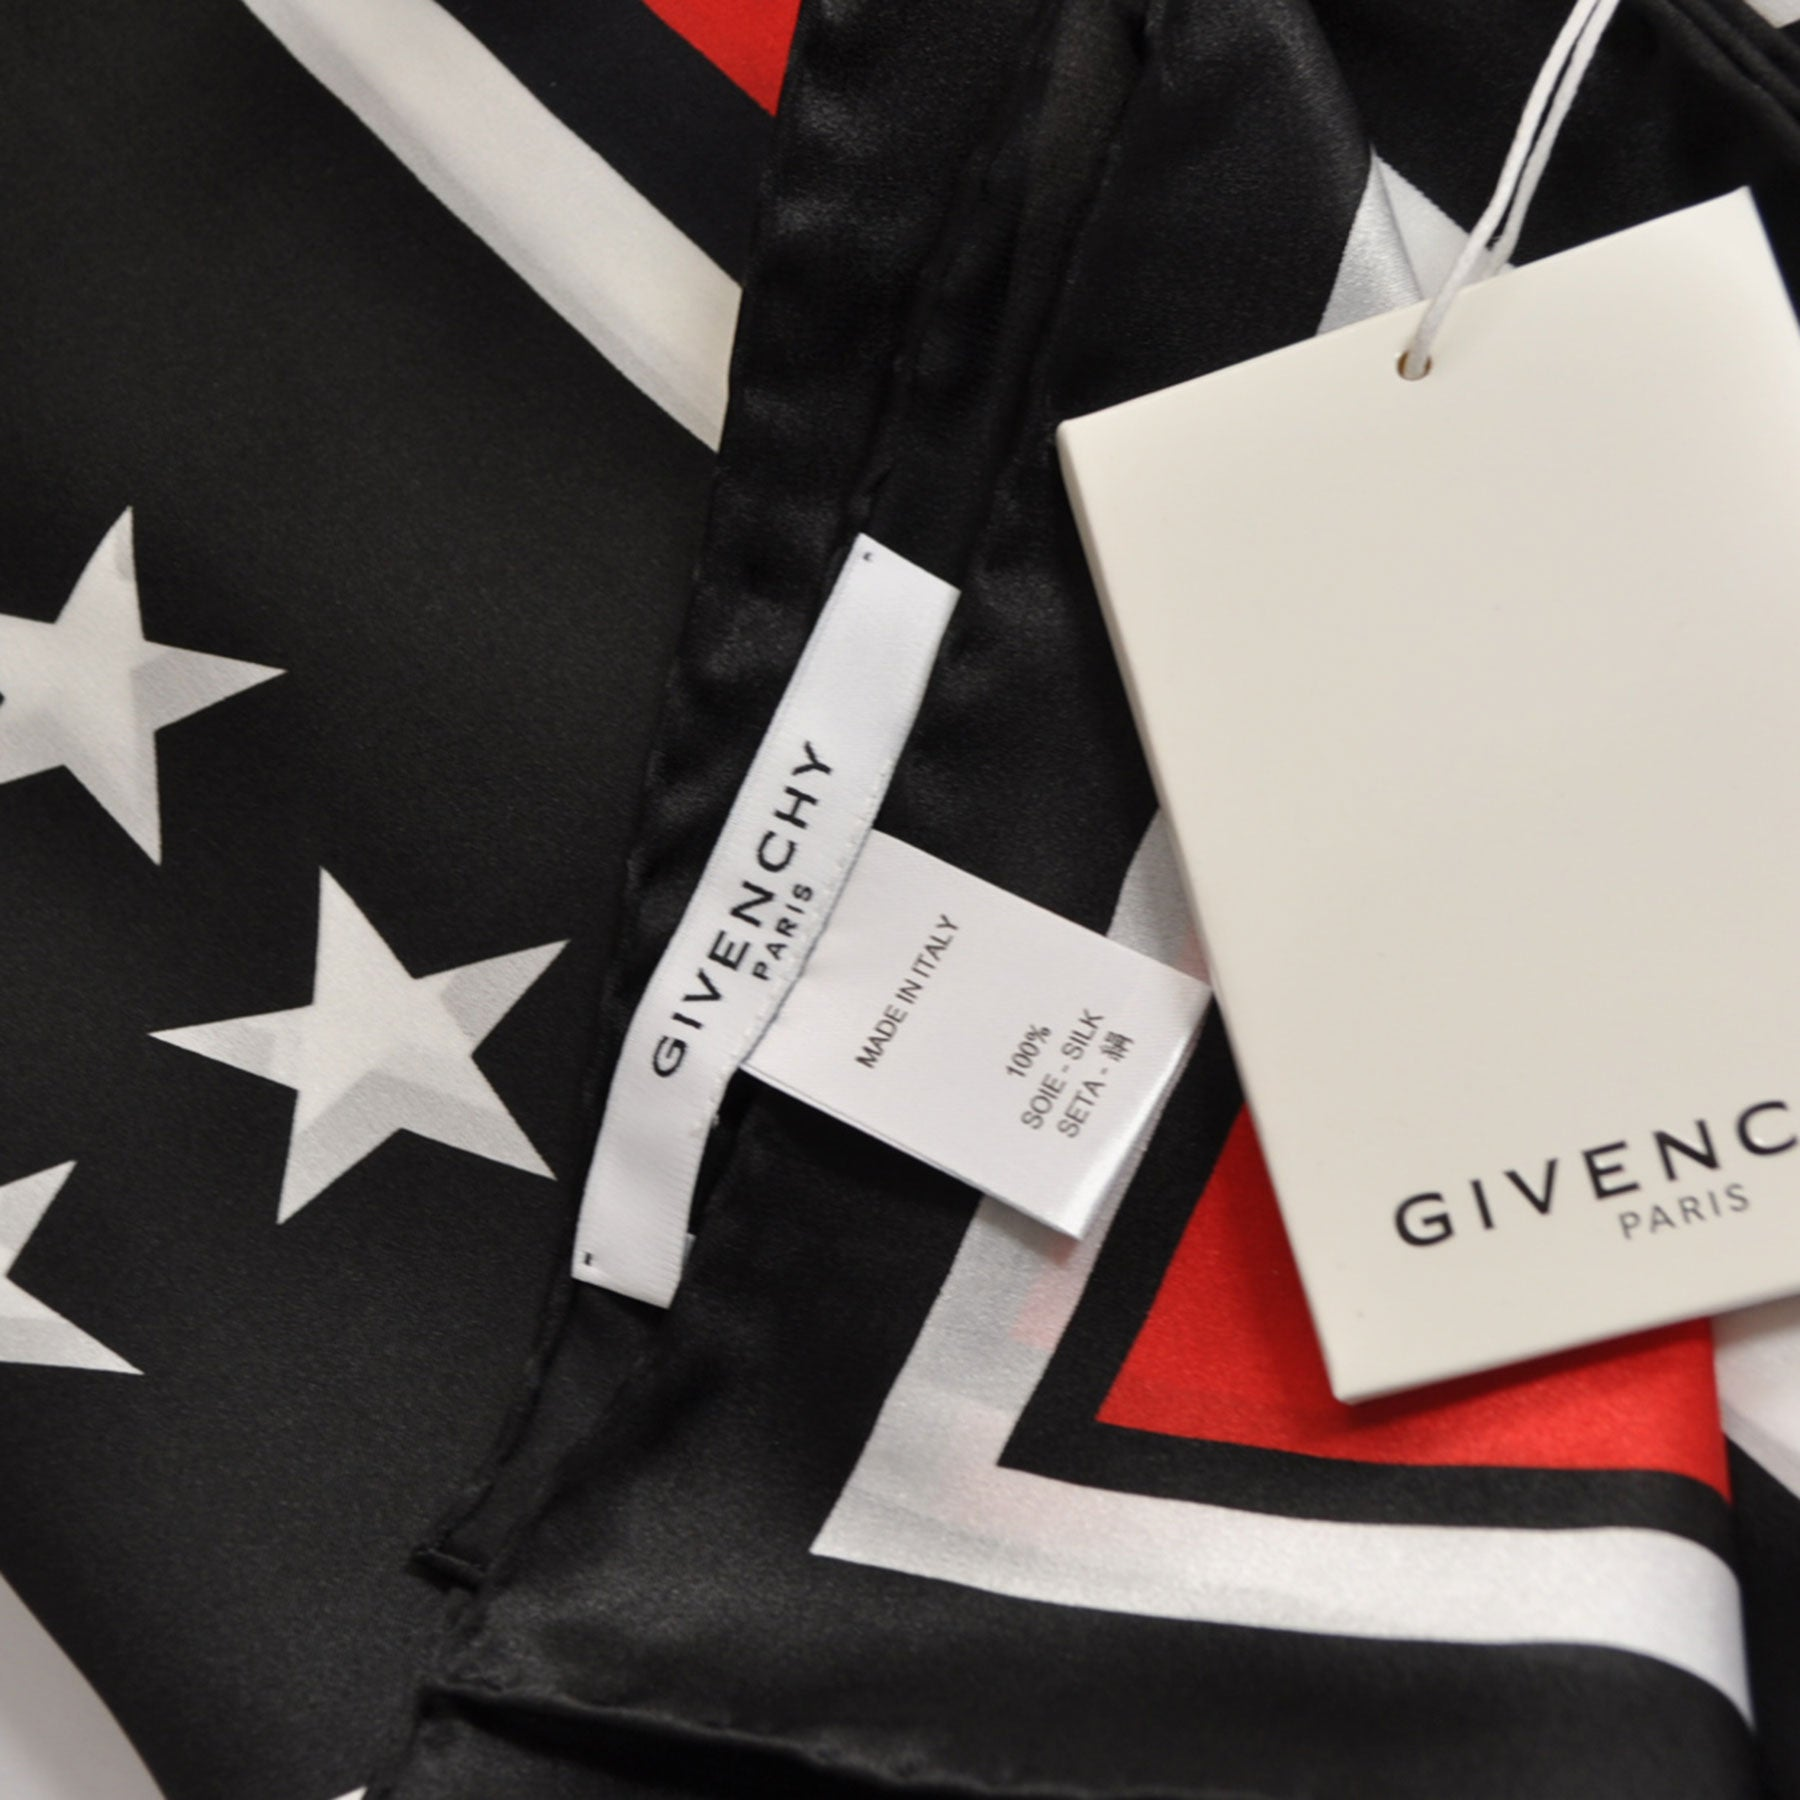 Givenchy Scarf Black 17 Stars & Stripes - Extra Large Square Silk Scarf FINAL SALE